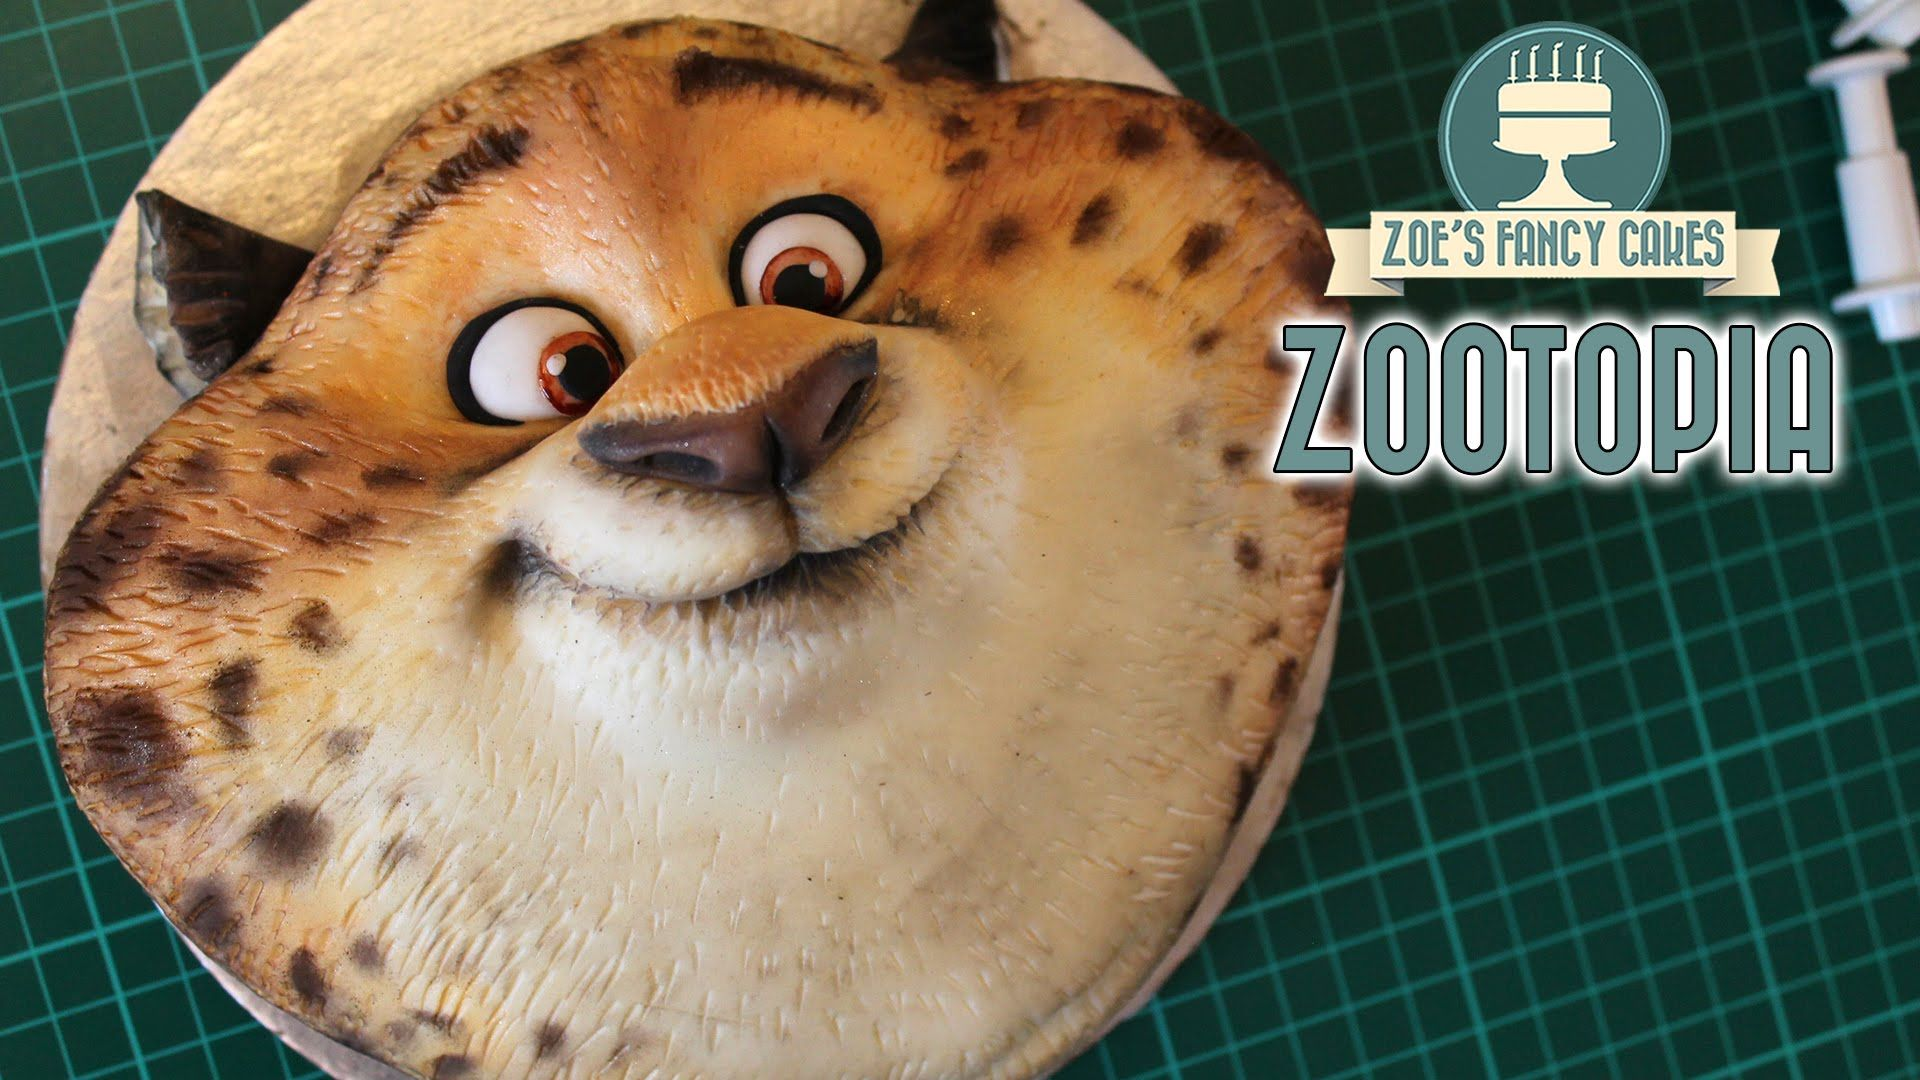 Zootopia Cake Officer Clawhauser Zootropolis Disney Cakes And